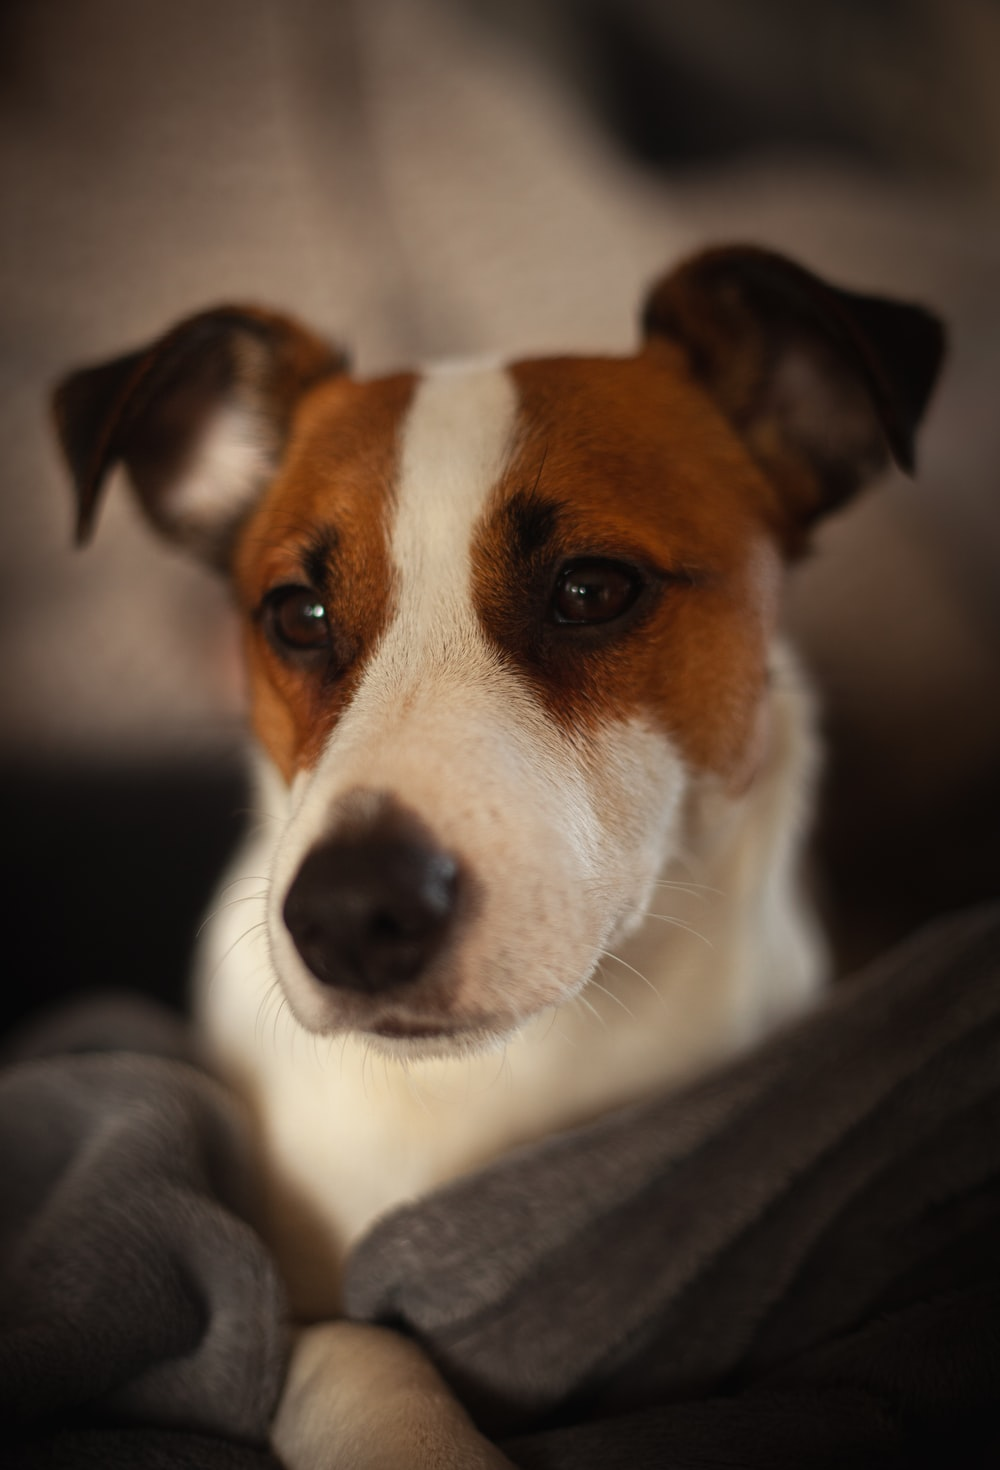 white and brown short coated dog